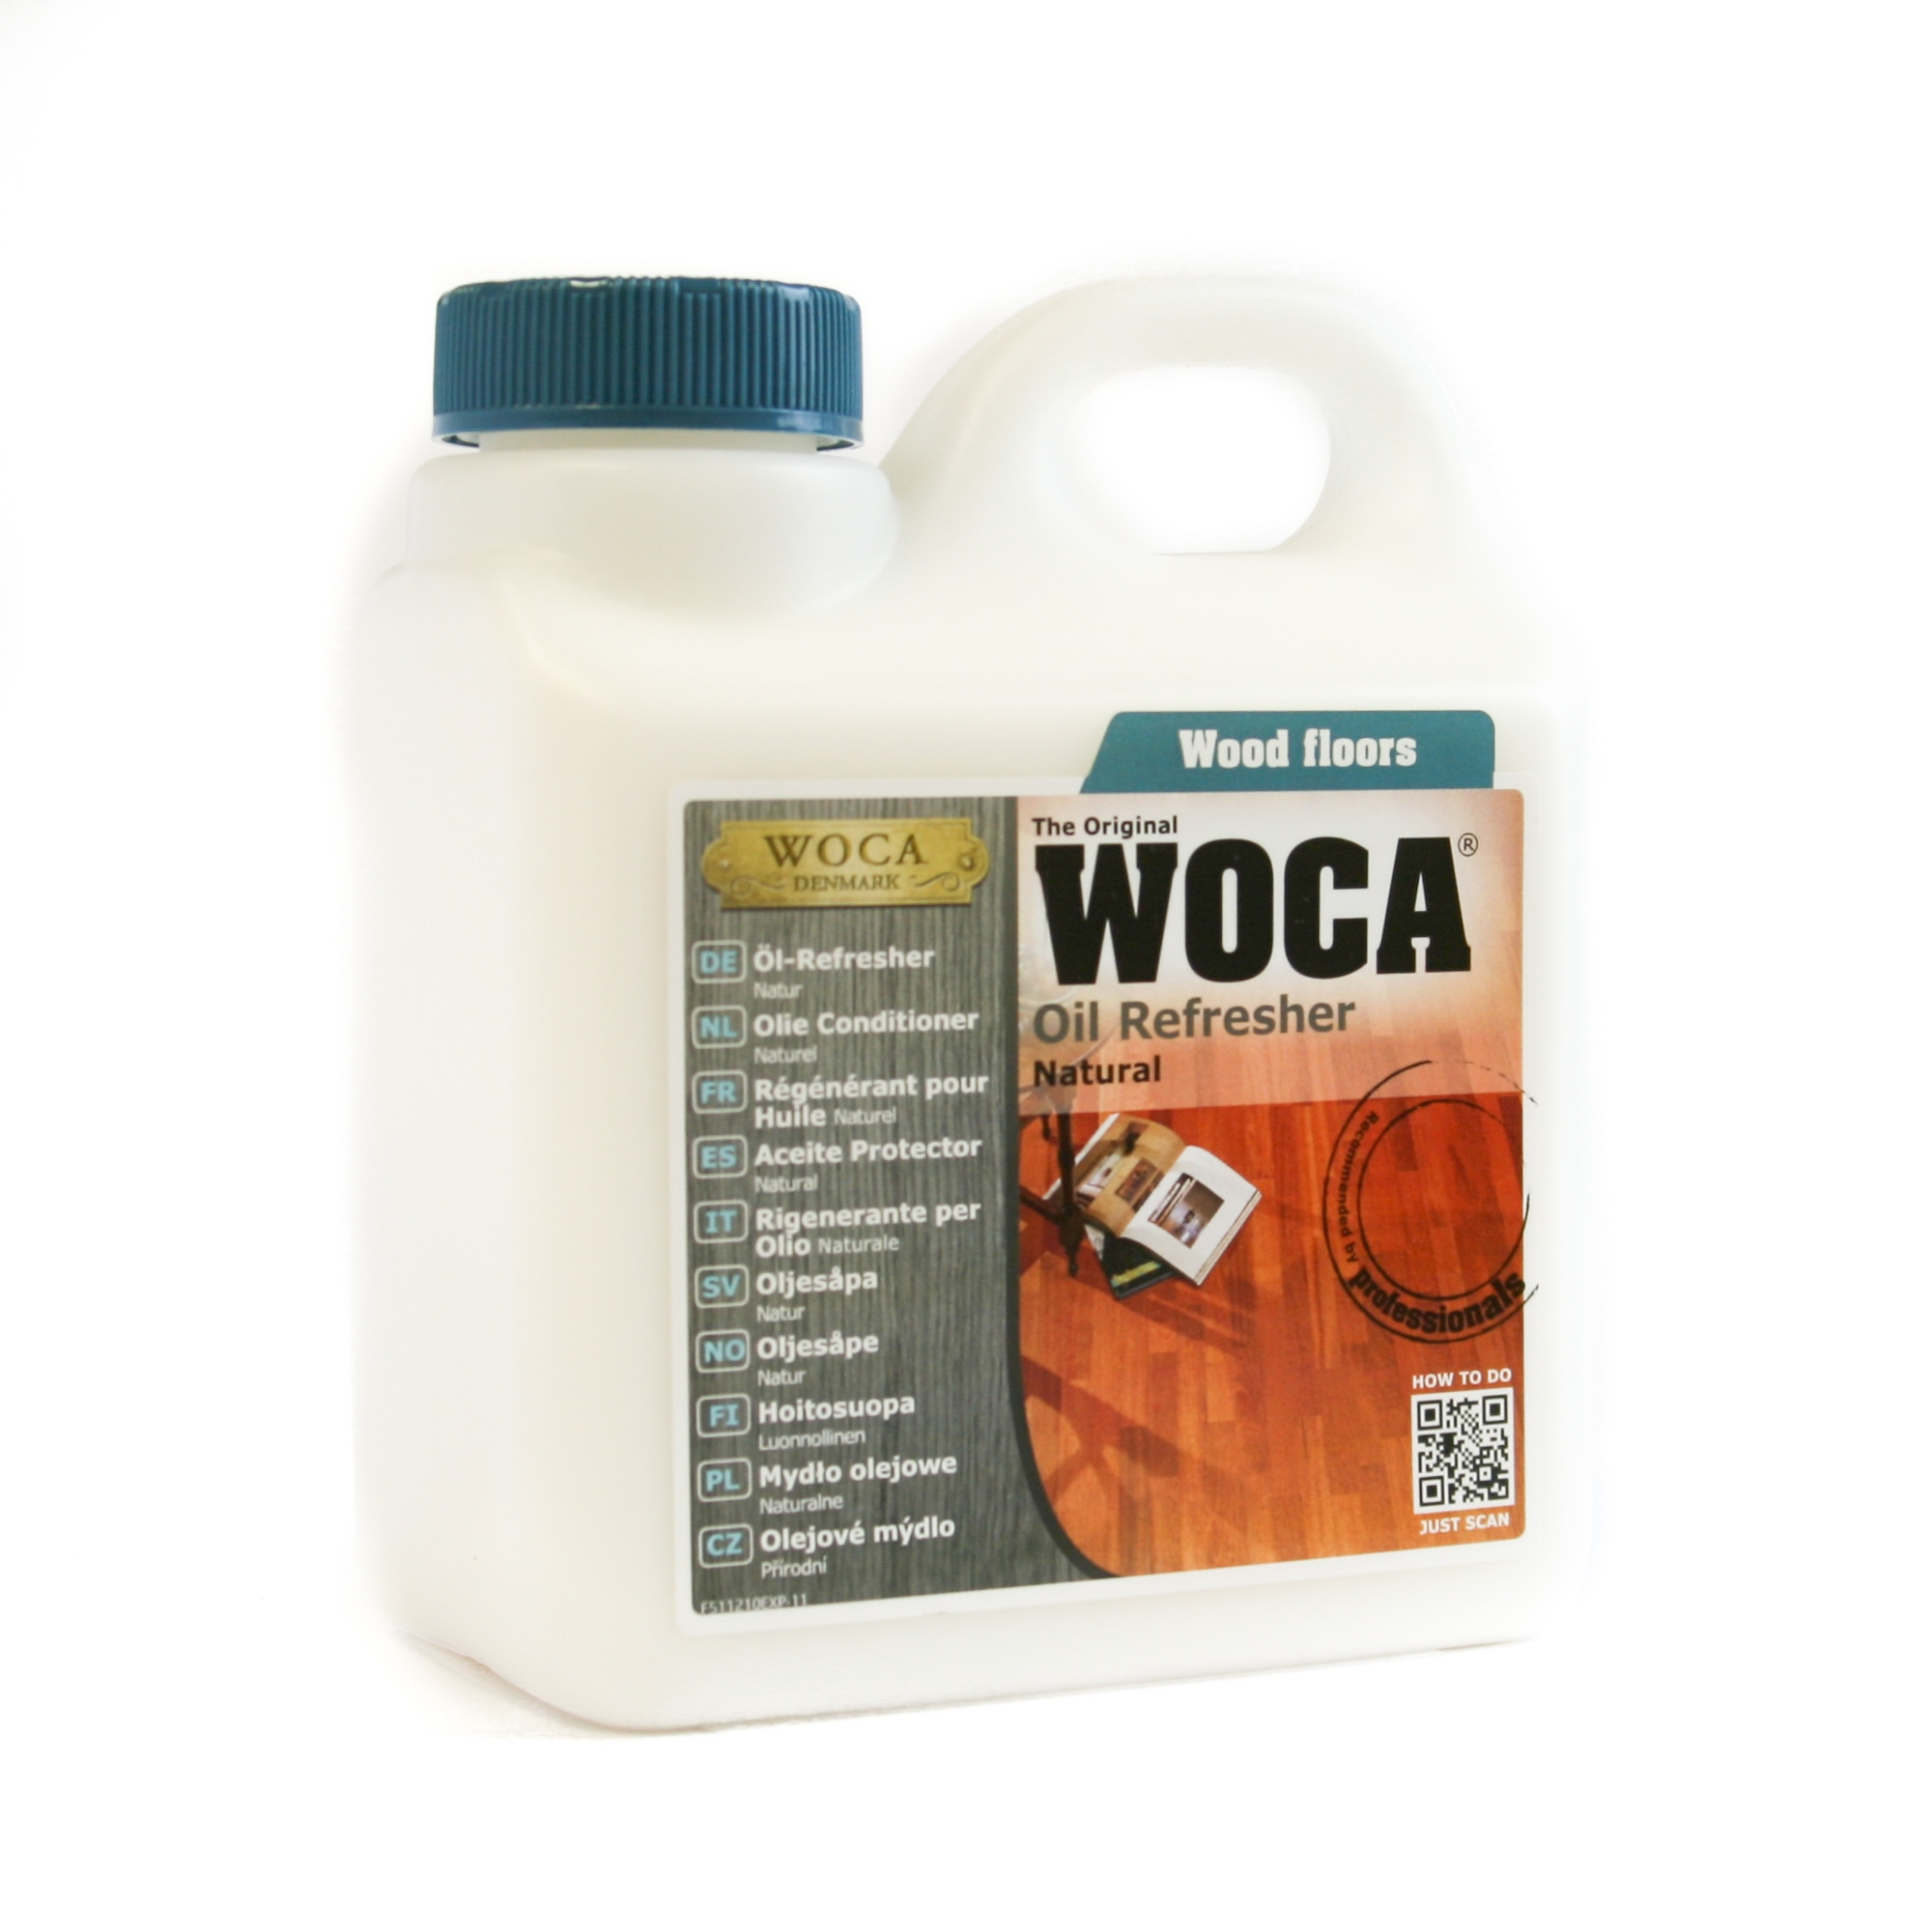 Wood Floor Oil Refresher